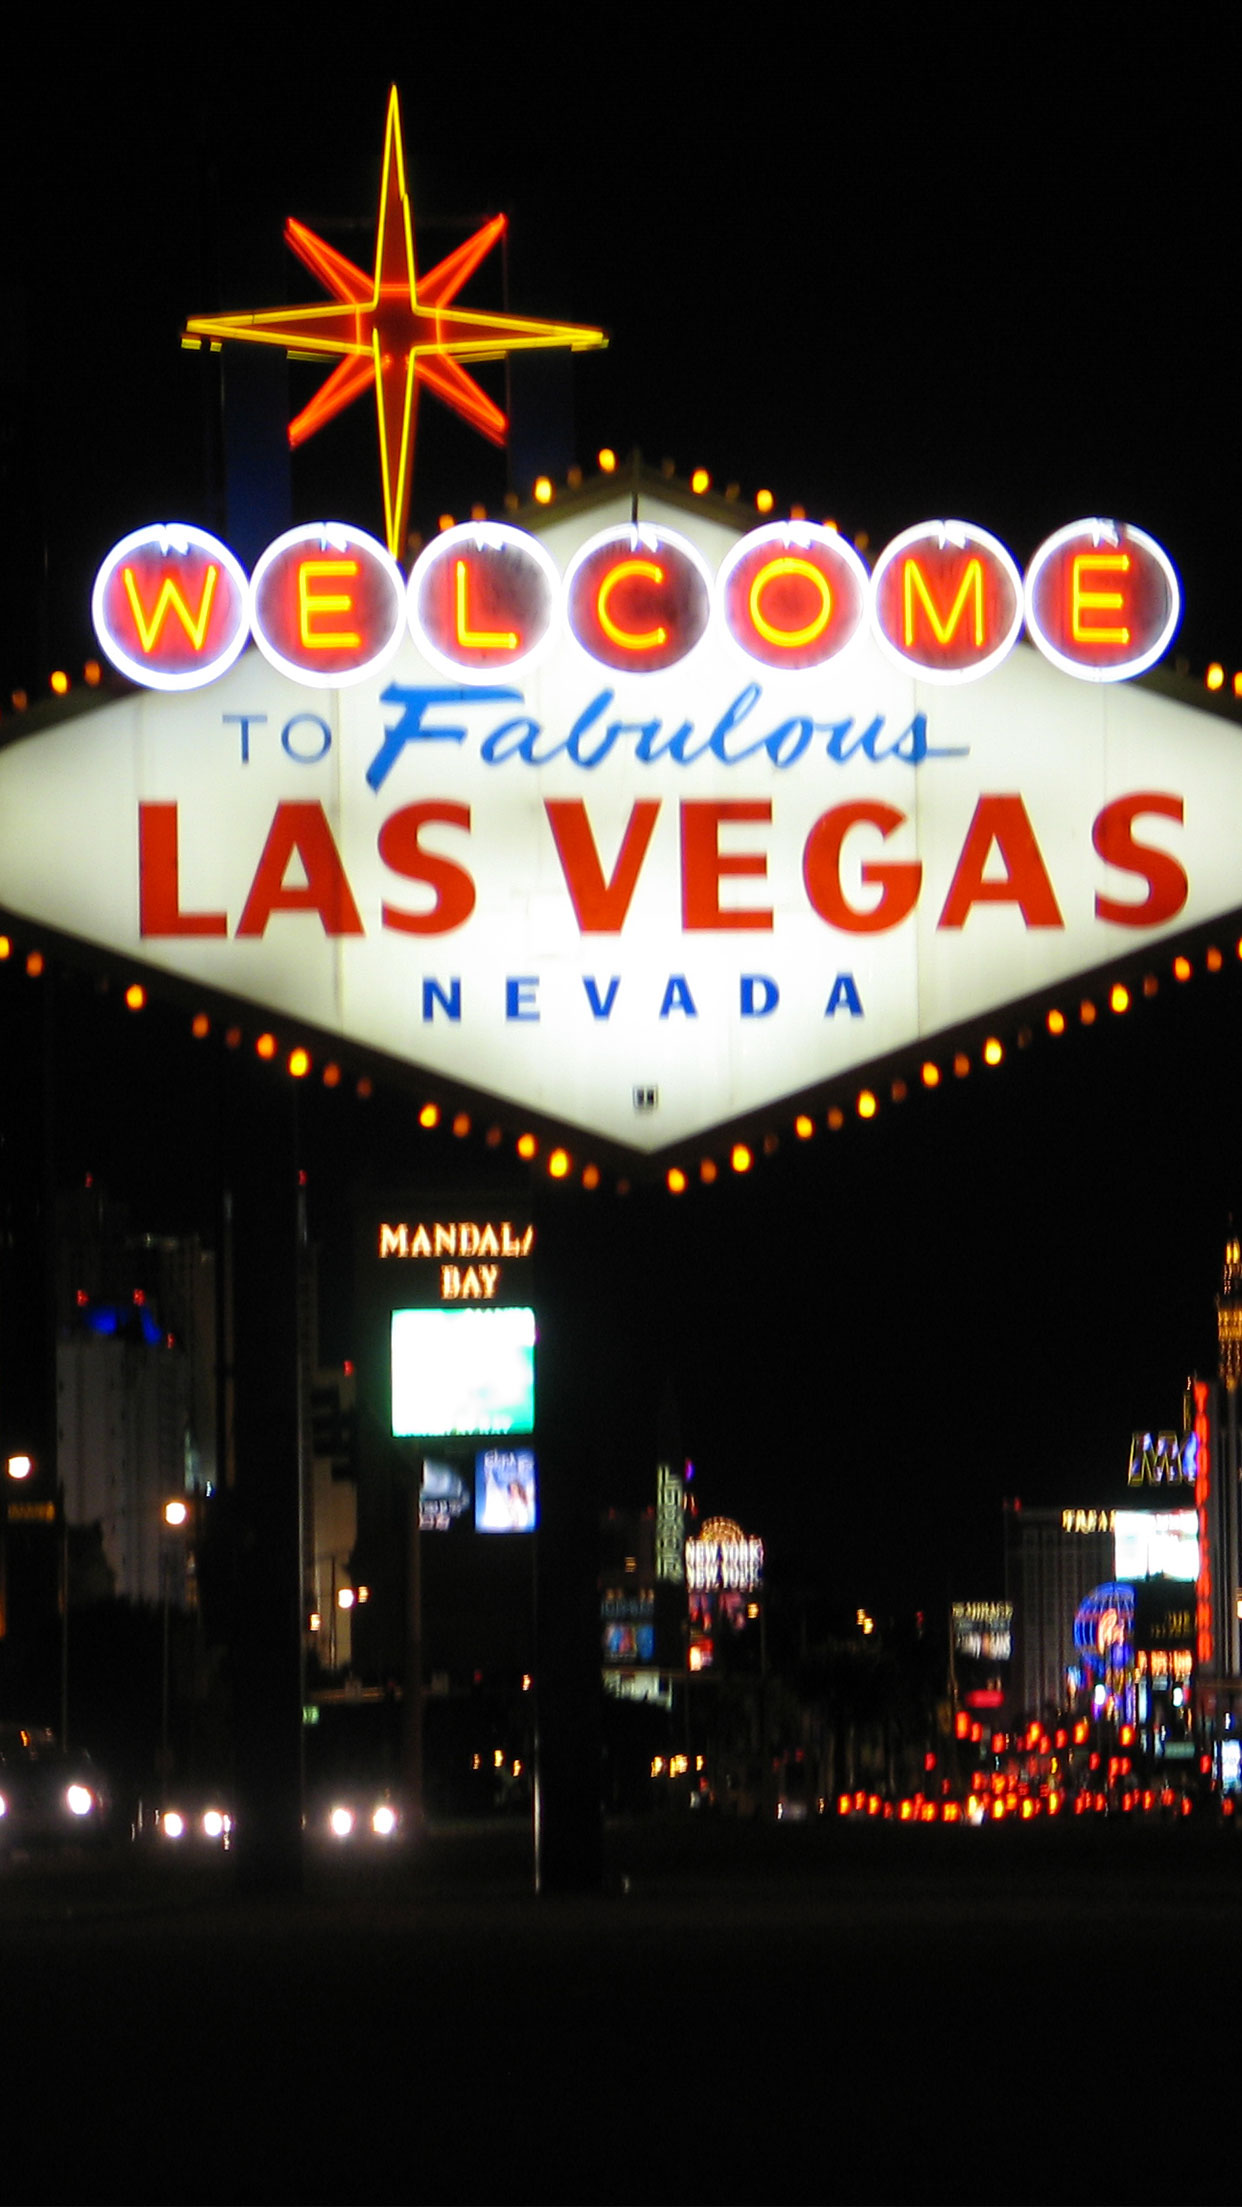 Las Vegas Welcome iPhone 3Wallpapers Parallax Las Vegas Welcome